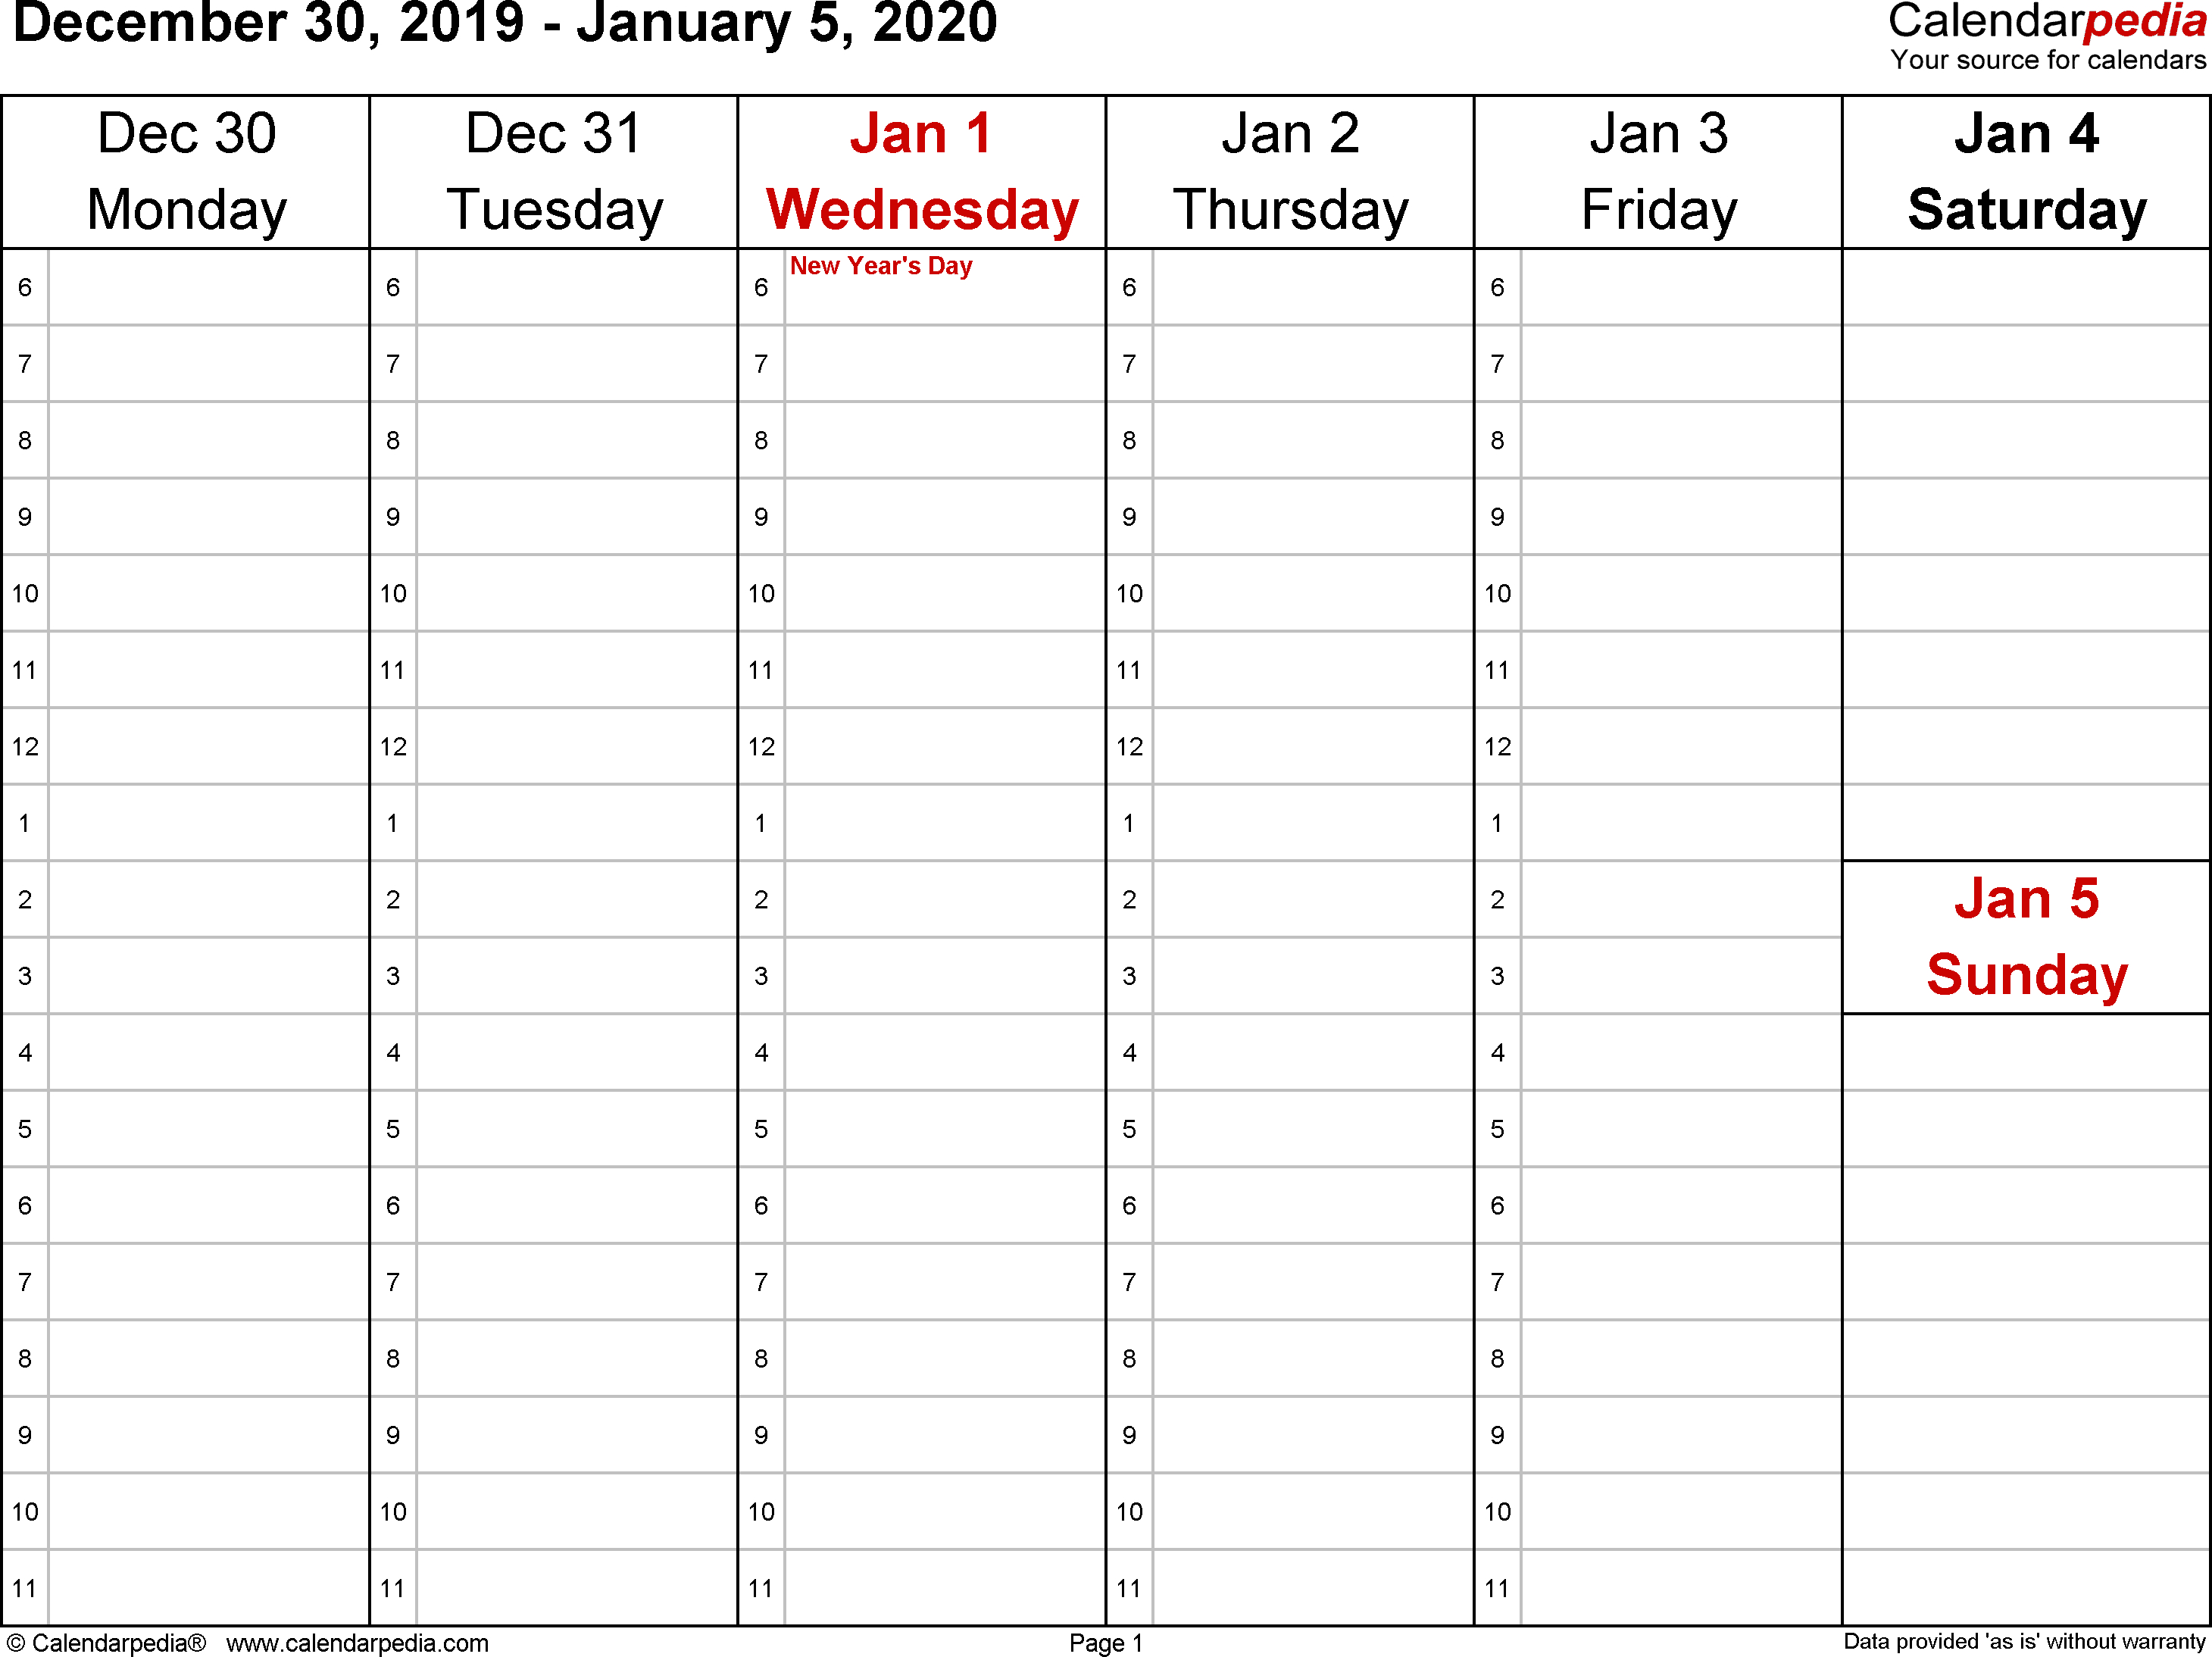 Weekly Calendar 2020 For Excel - 12 Free Printable Templates regarding Calender 2020 Template Monday To Sunday